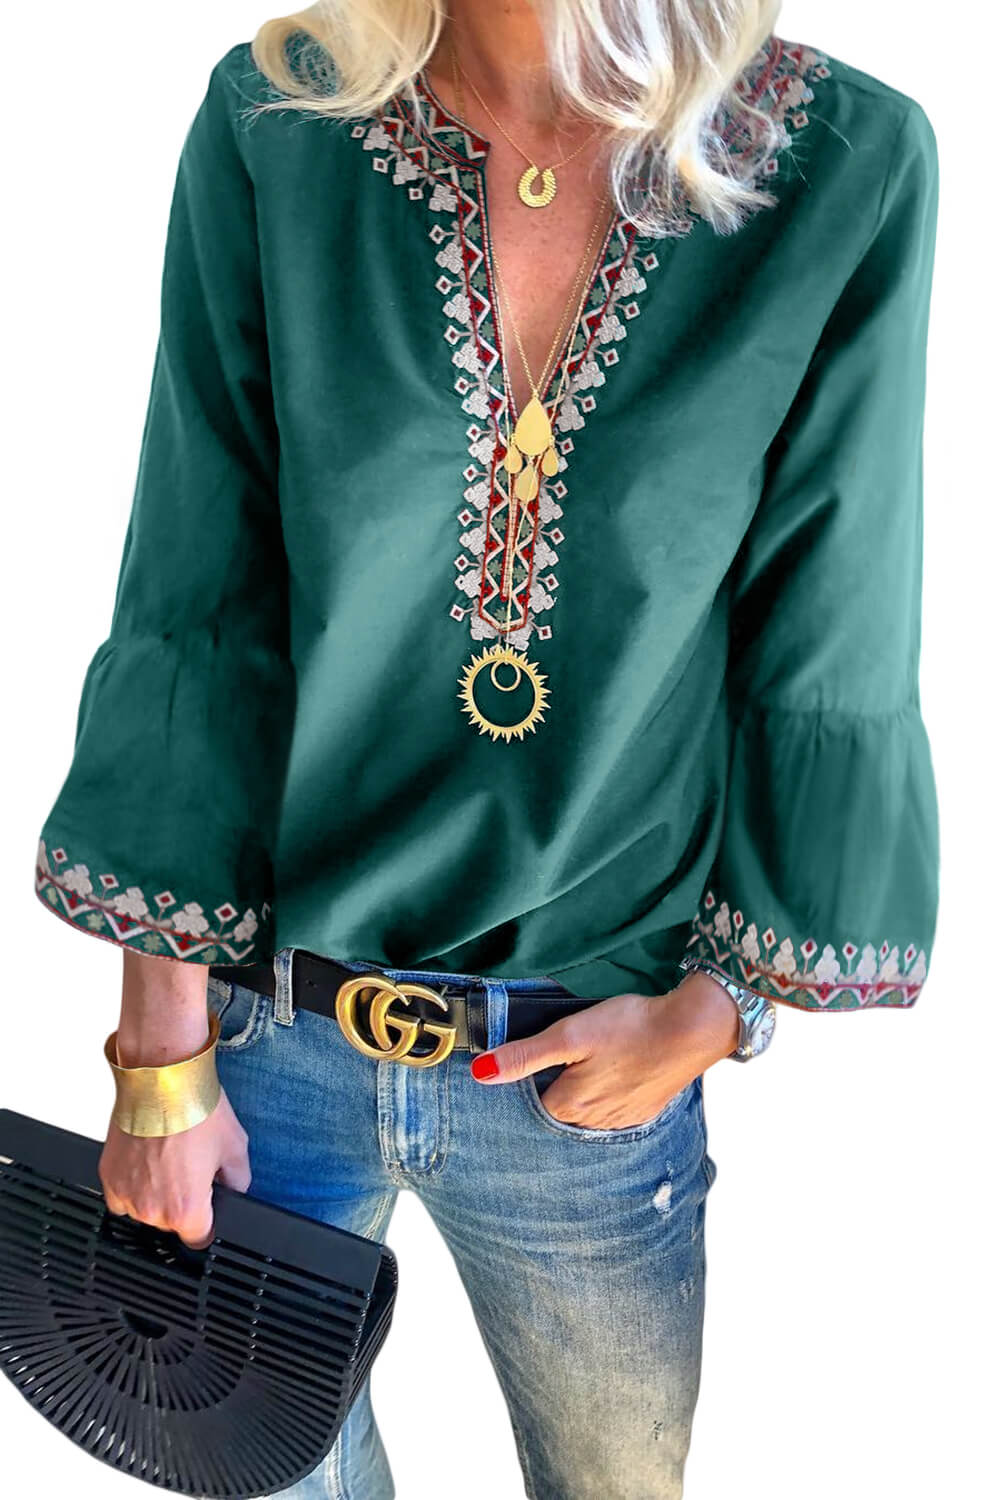 Green Boho Floral V Neck Long Sleeve Casual Top Long Sleeve Tops Discount Designer Fashion Clothes Shoes Bags Women Men Kids Children Black Owned Business